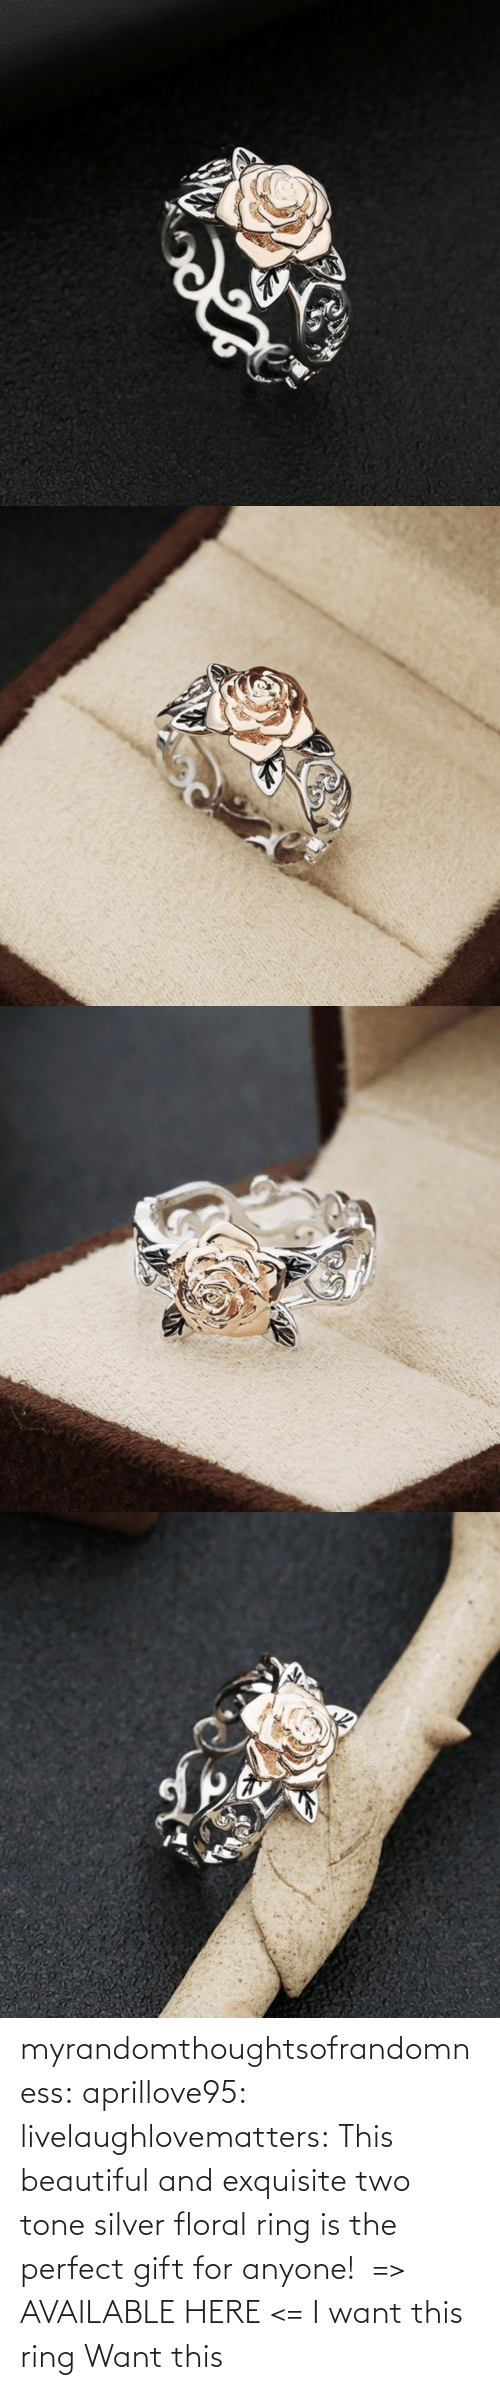 tone: myrandomthoughtsofrandomness:  aprillove95: livelaughlovematters:  This beautiful and exquisite two tone silver floral ring is the perfect gift for anyone!  => AVAILABLE HERE <=    I want this ring     Want this